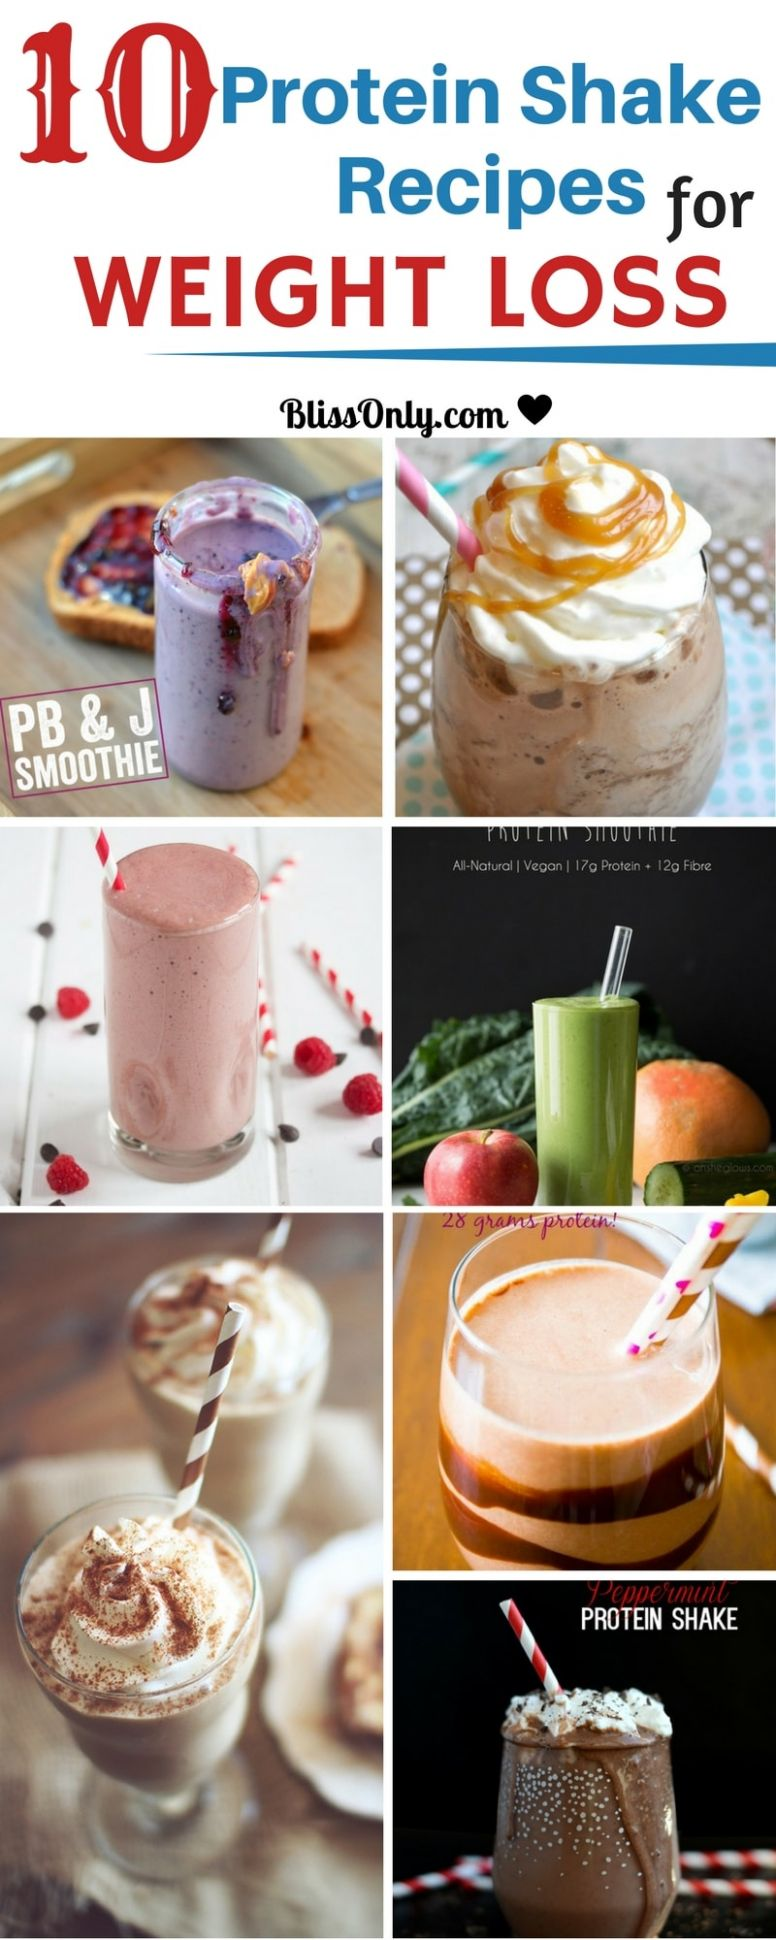 12 Protein Shake Recipes For Weight Loss - BlissOnly - Recipe Weight Loss Protein Shake